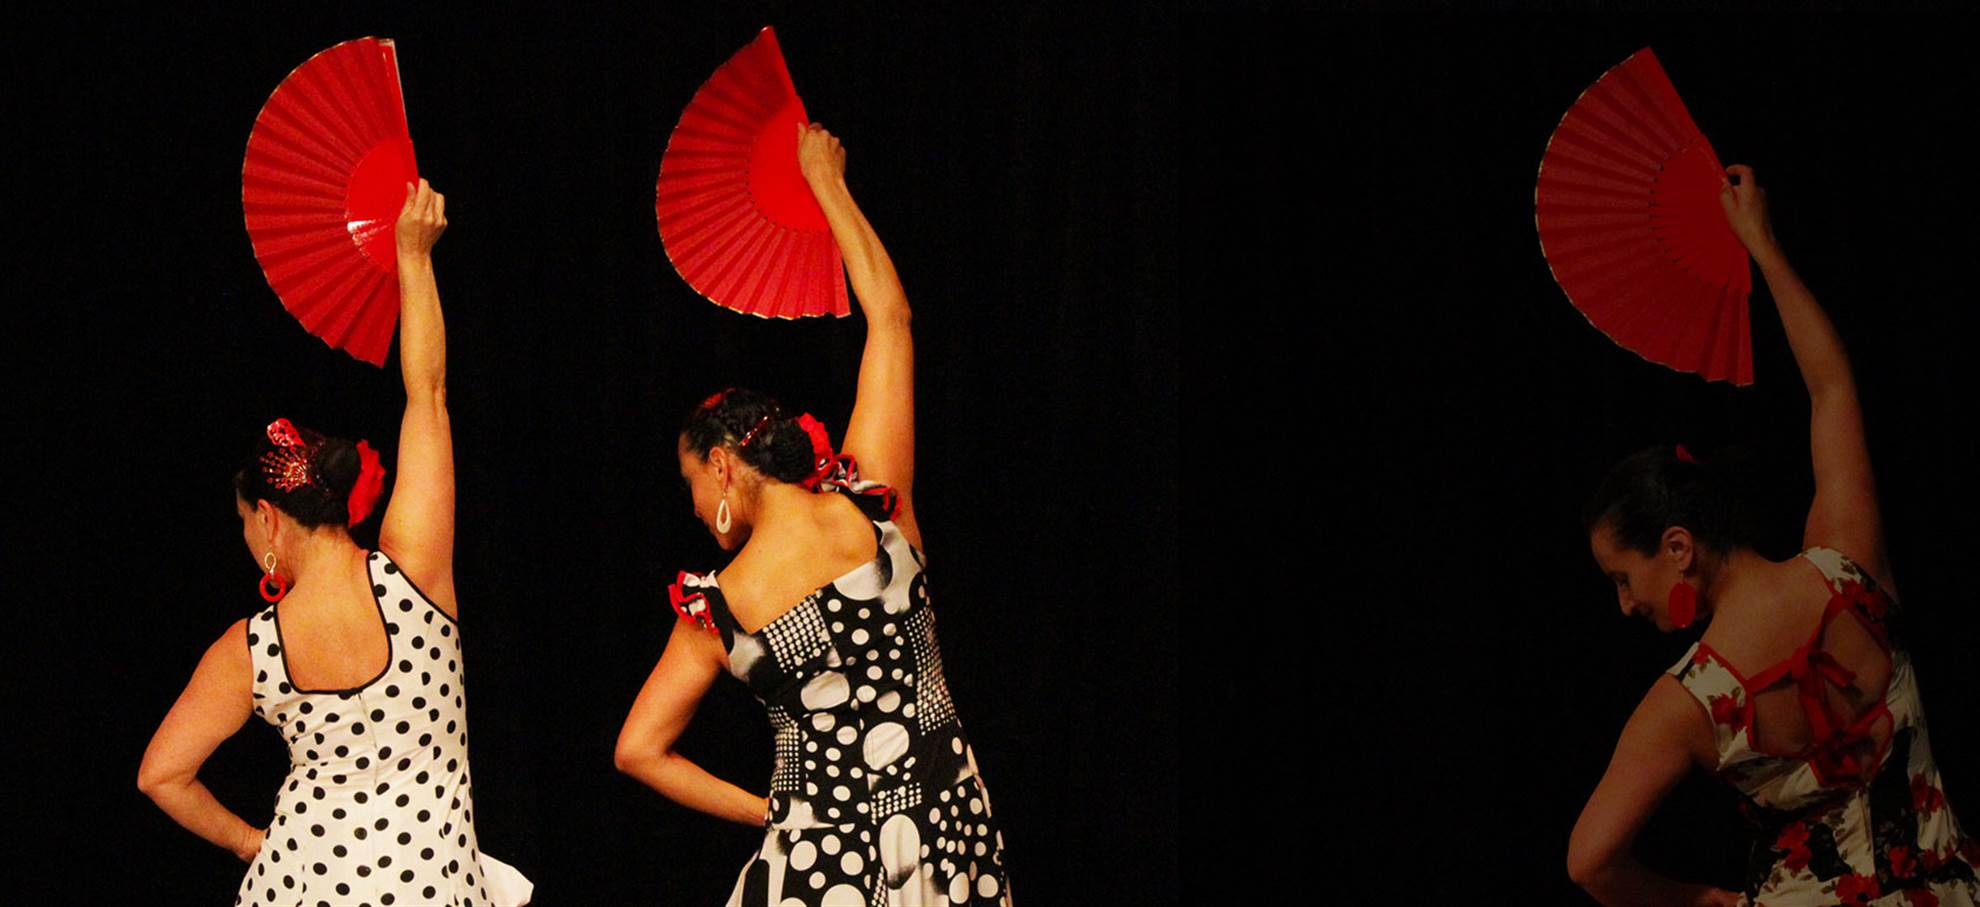 Flamenco show at Café Chinitas (MADCHINI)